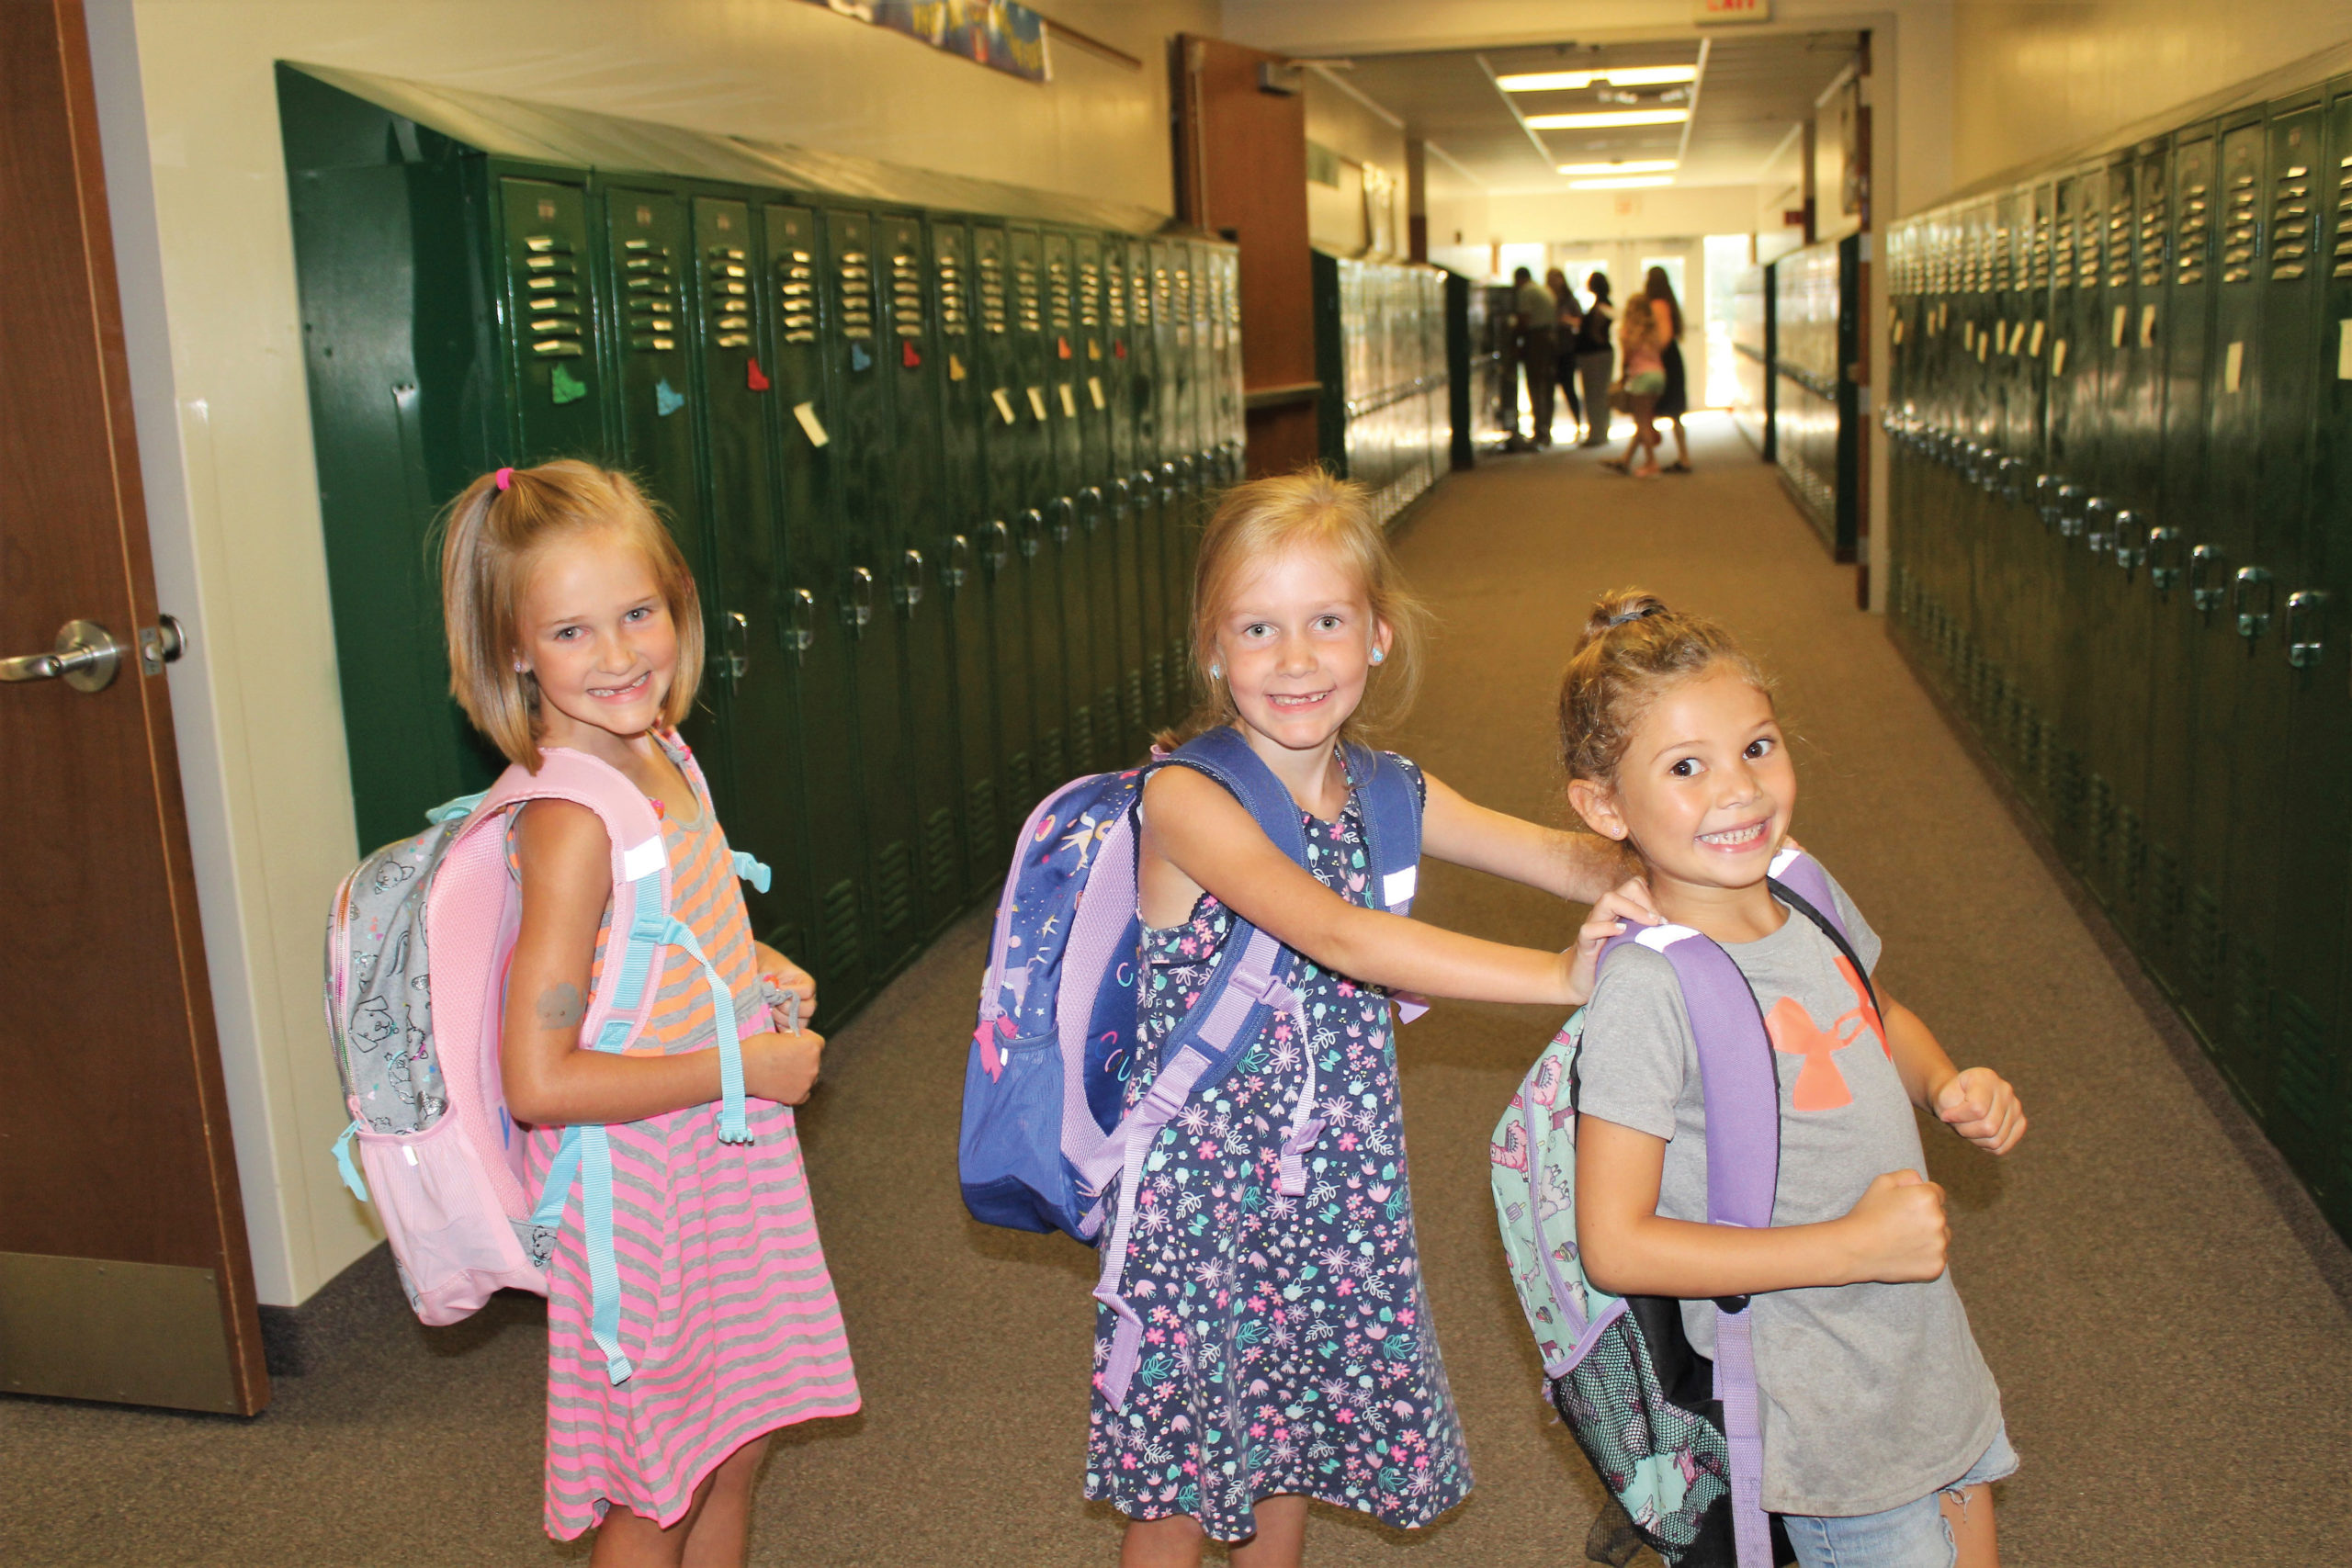 A new school year holds the promise of excitement for three Hunsberger sisters on Aug. 30 at Quakertown Christian School in Pennsylvania. — Erica Talese/Quakertown Christian School